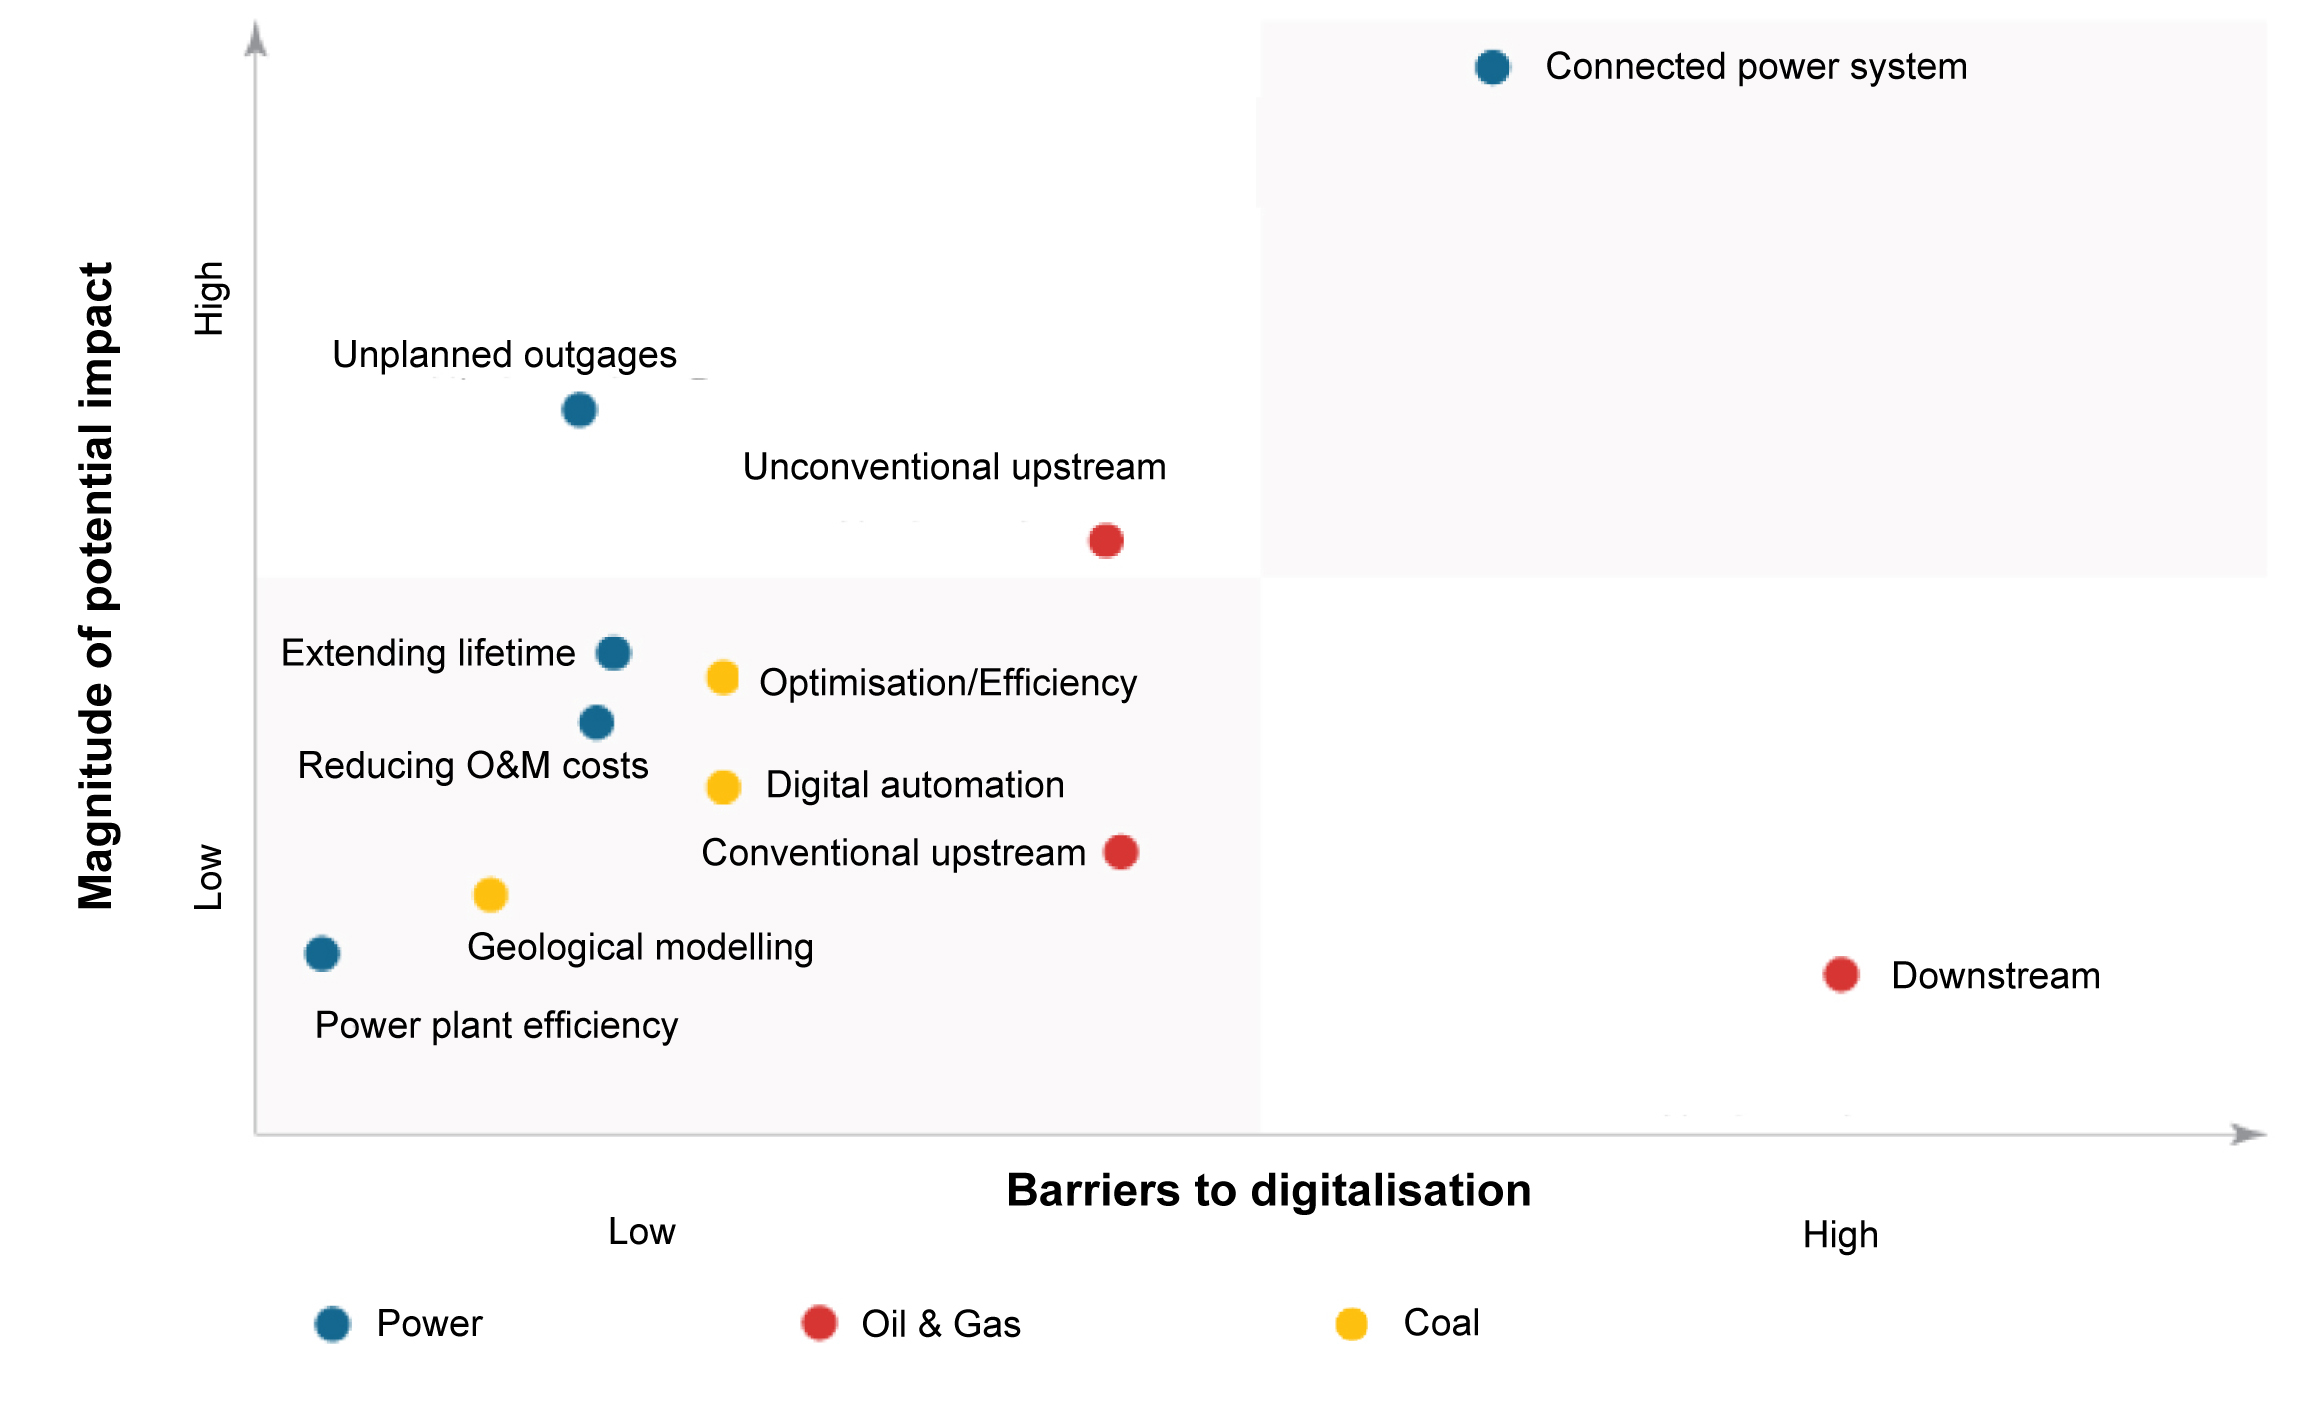 Fig. 4. The degree of influence and barriers to the introduction of digital systems in traditional hydrocarbon energy. Source: IEA Digitalization and Energy Report 2017.